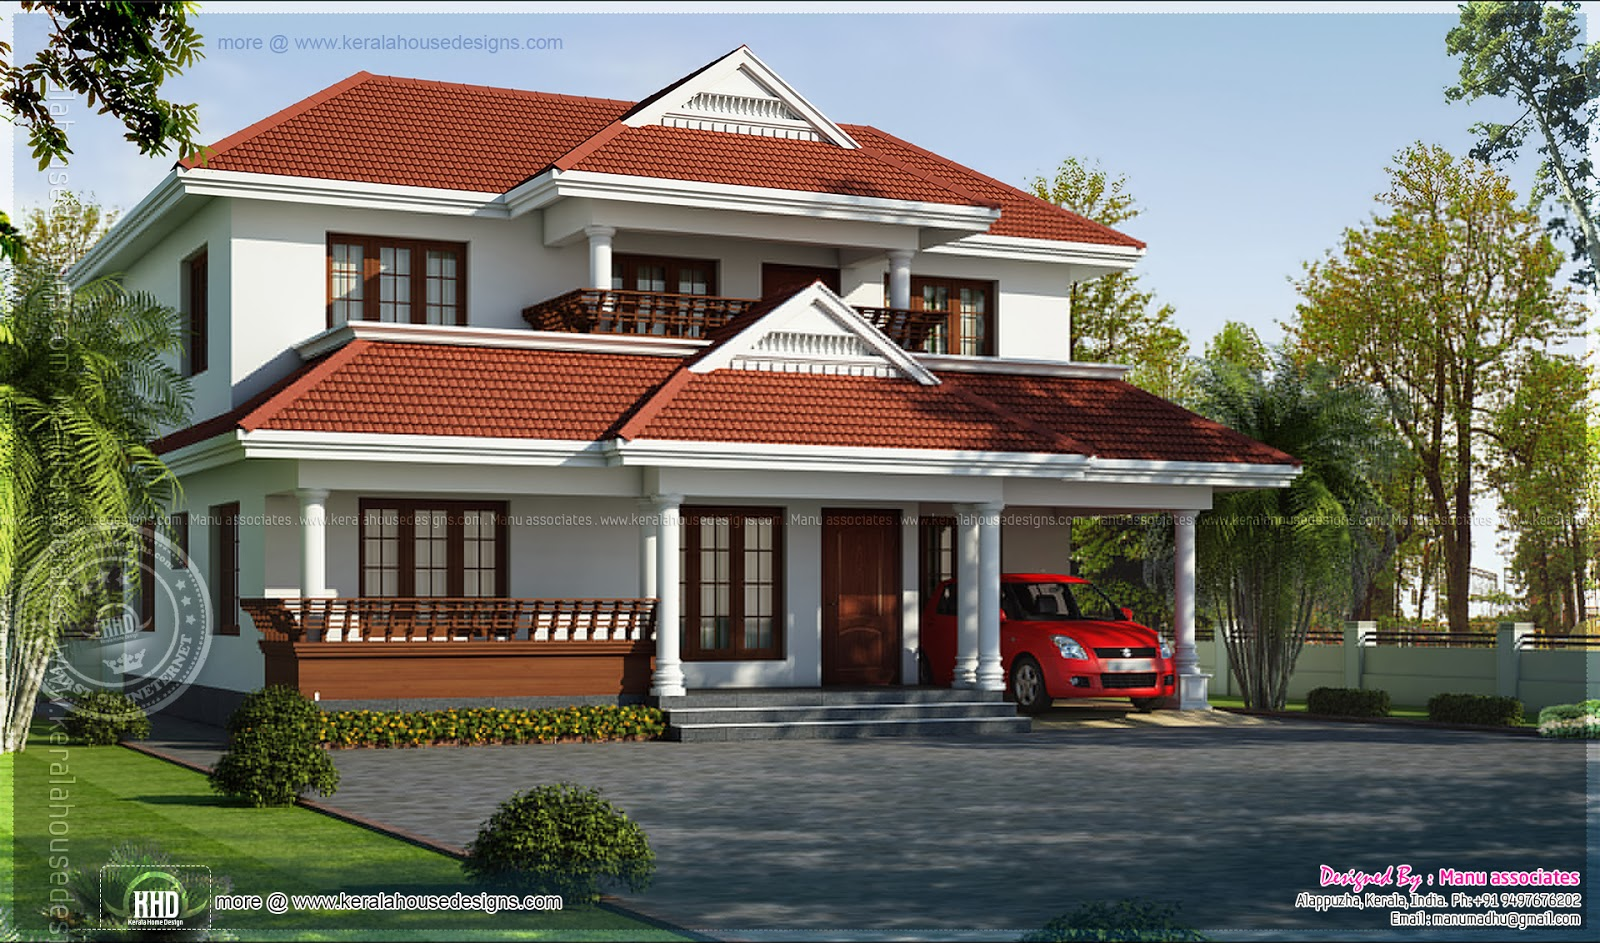 4 bedroom kerala model house in 2020 square feet kerala for Homes models and plans